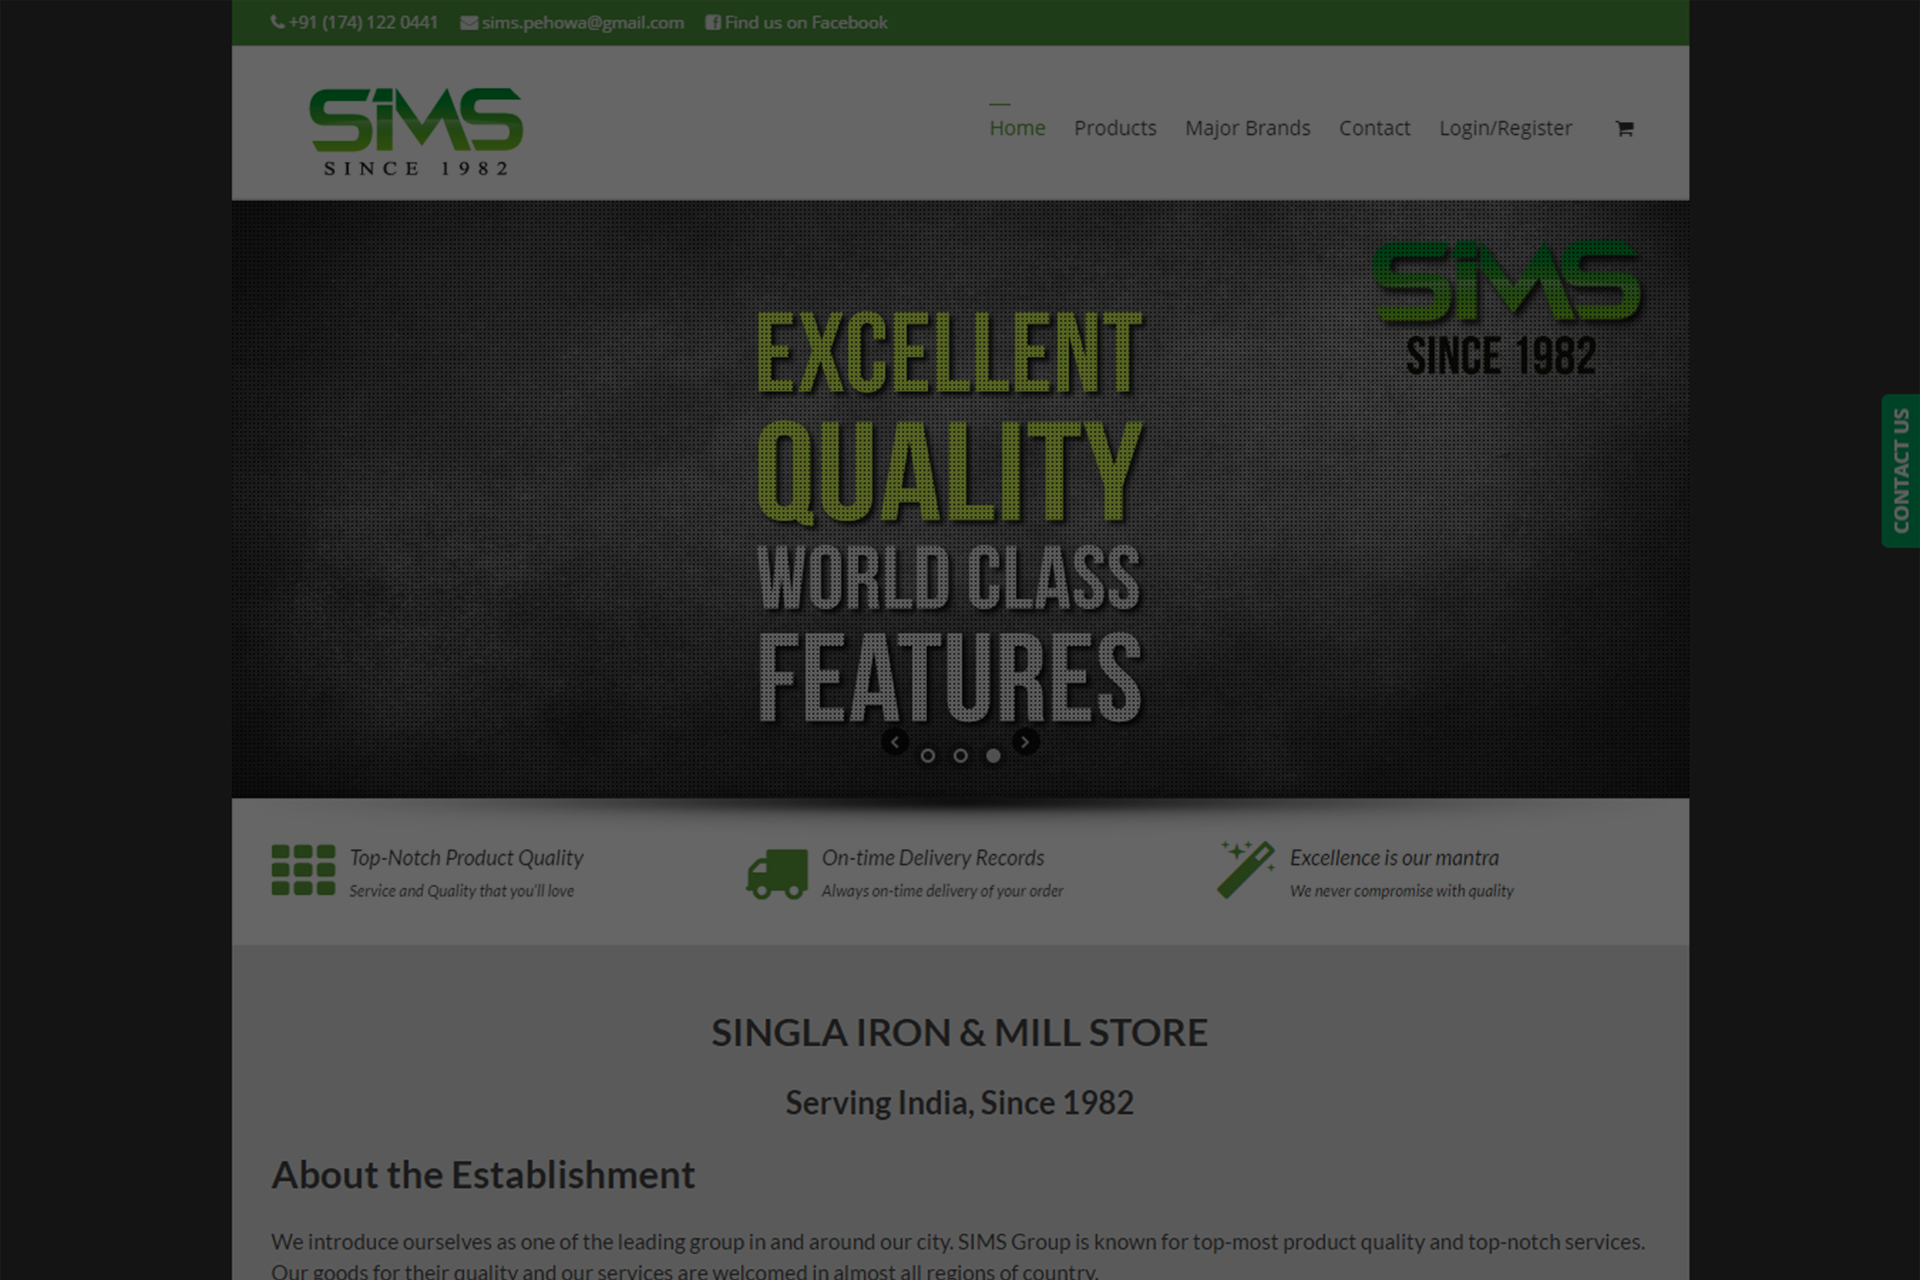 Sims Group